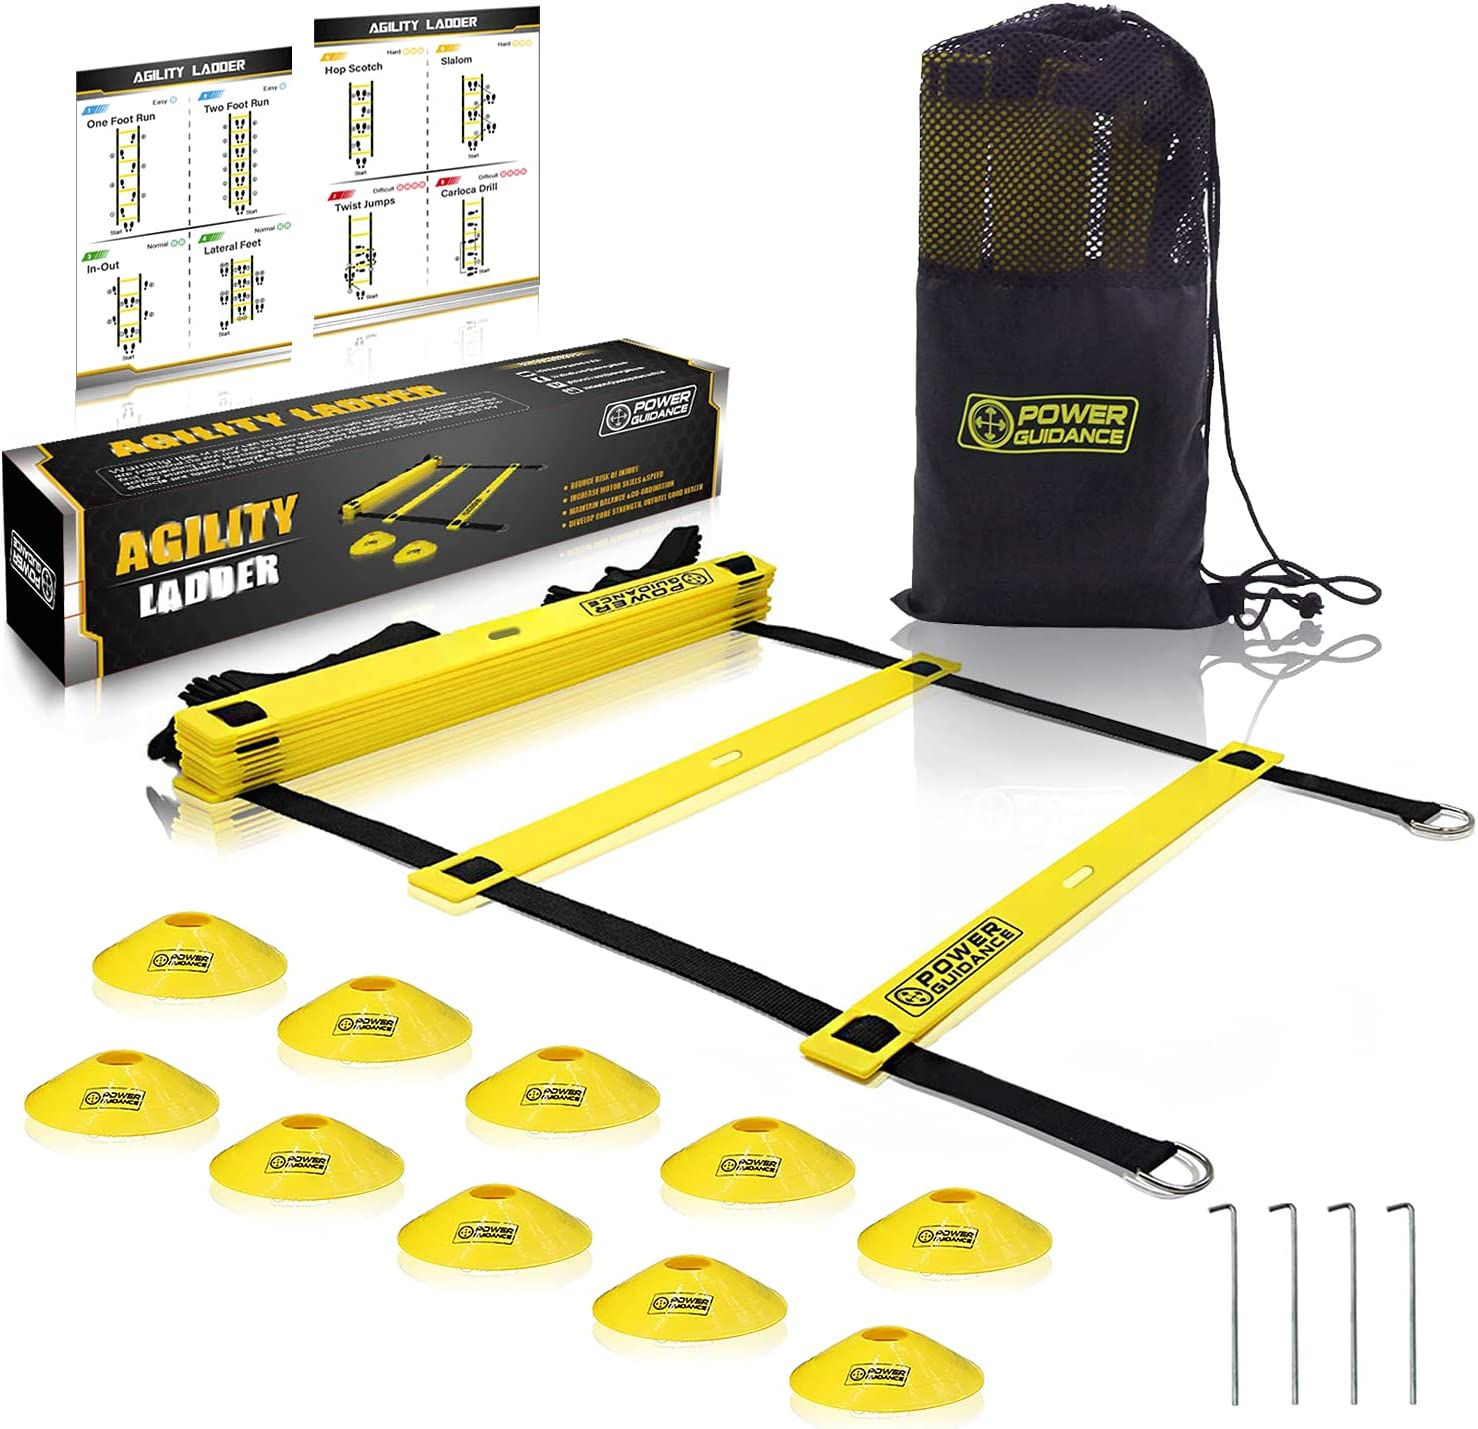 POWER GUIDANCE Agility Ladder 20 Feet for Be super welcome Manufacturer regenerated product Traini Speed